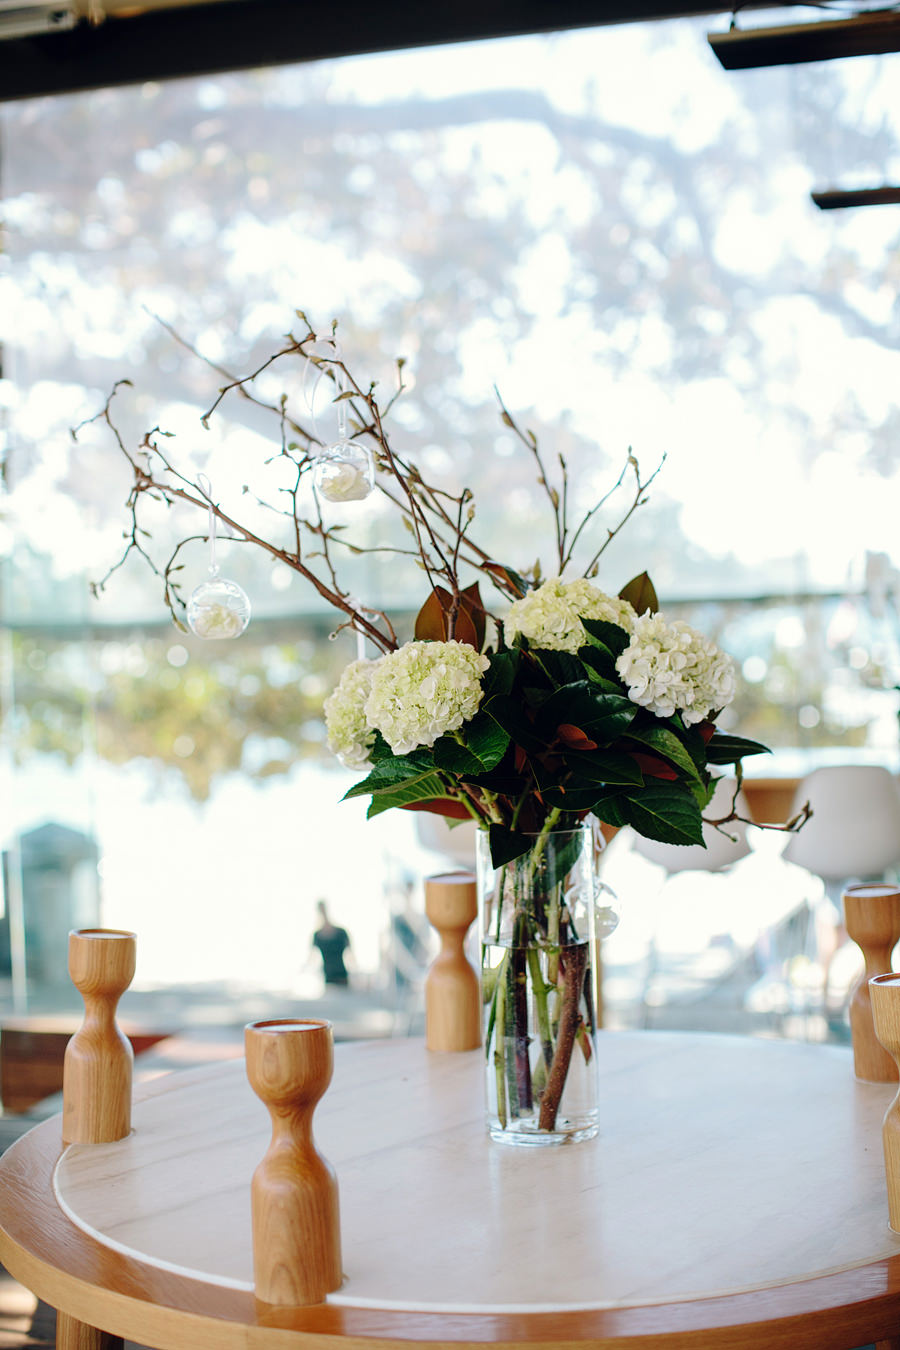 Balmoral Public Dining Room Wedding Photographer: Floral arrangements